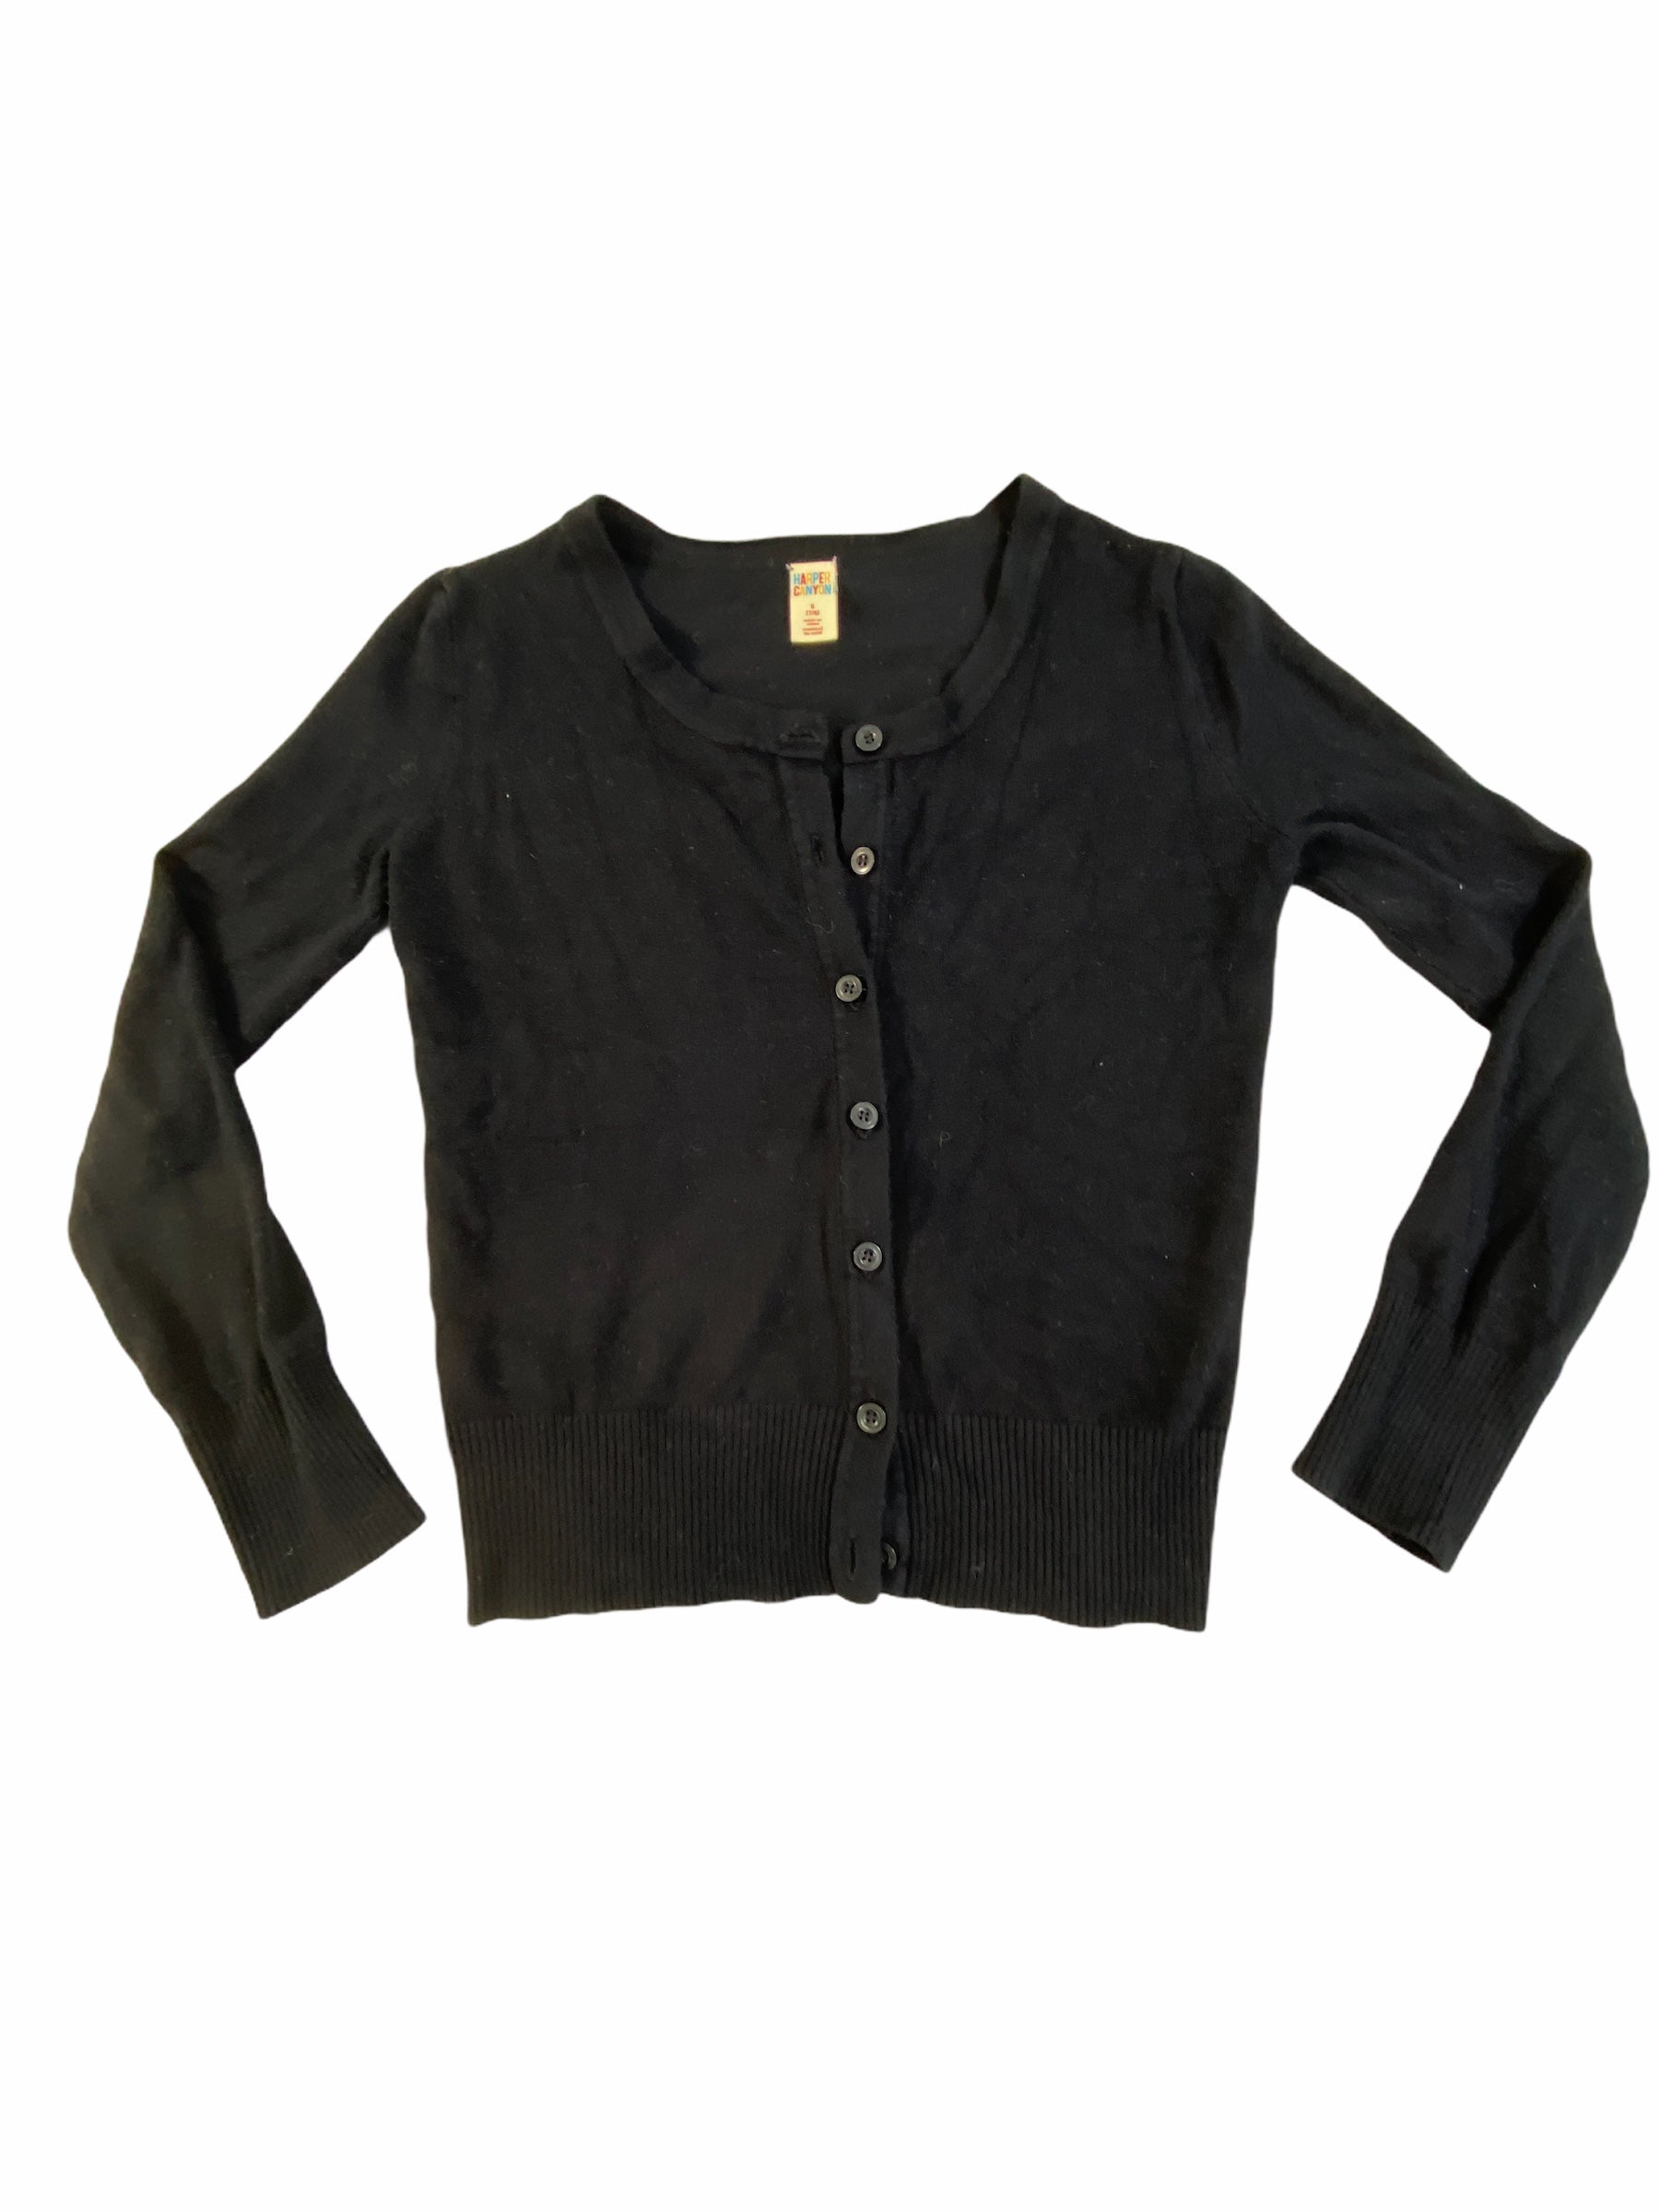 Harper Canyon Black Cardigan (7/8 Girls)